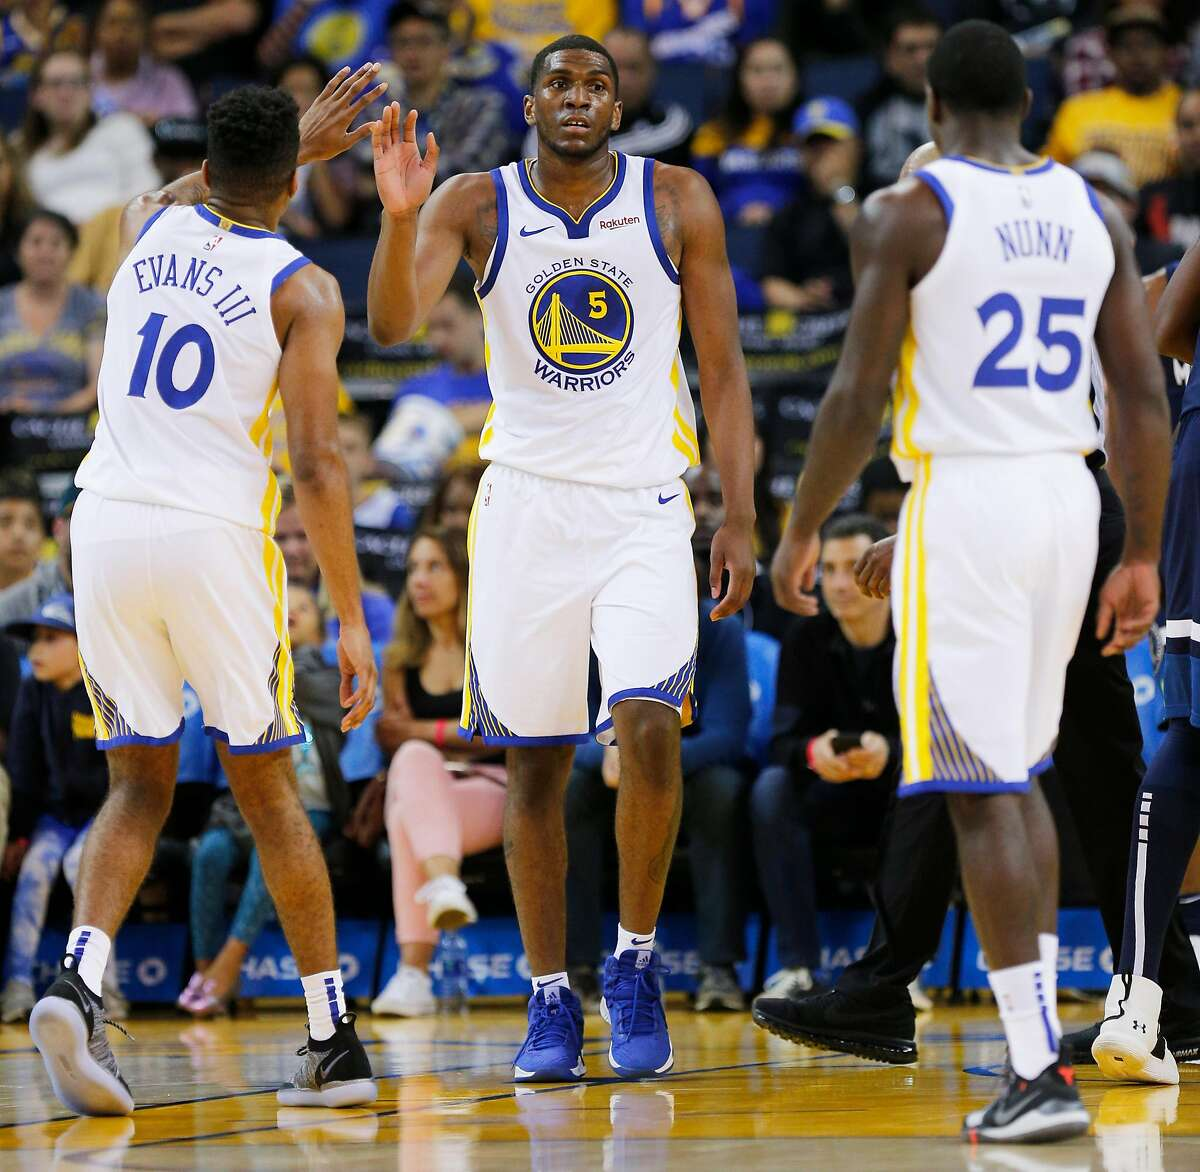 Golden State Warriors forward Kevon Looney (5) during the second half of an NBA preseason game between the Golden State Warriors and Minnesota Timberwolves at Oracle Arena on Saturday, Sept. 29, 2018, in Oakland, Calif. The Minnesota Timberwolves won 114-110. Also photographed are Warriors guard Jacob Evans III (10) and guard Kendrick Nunn (25)